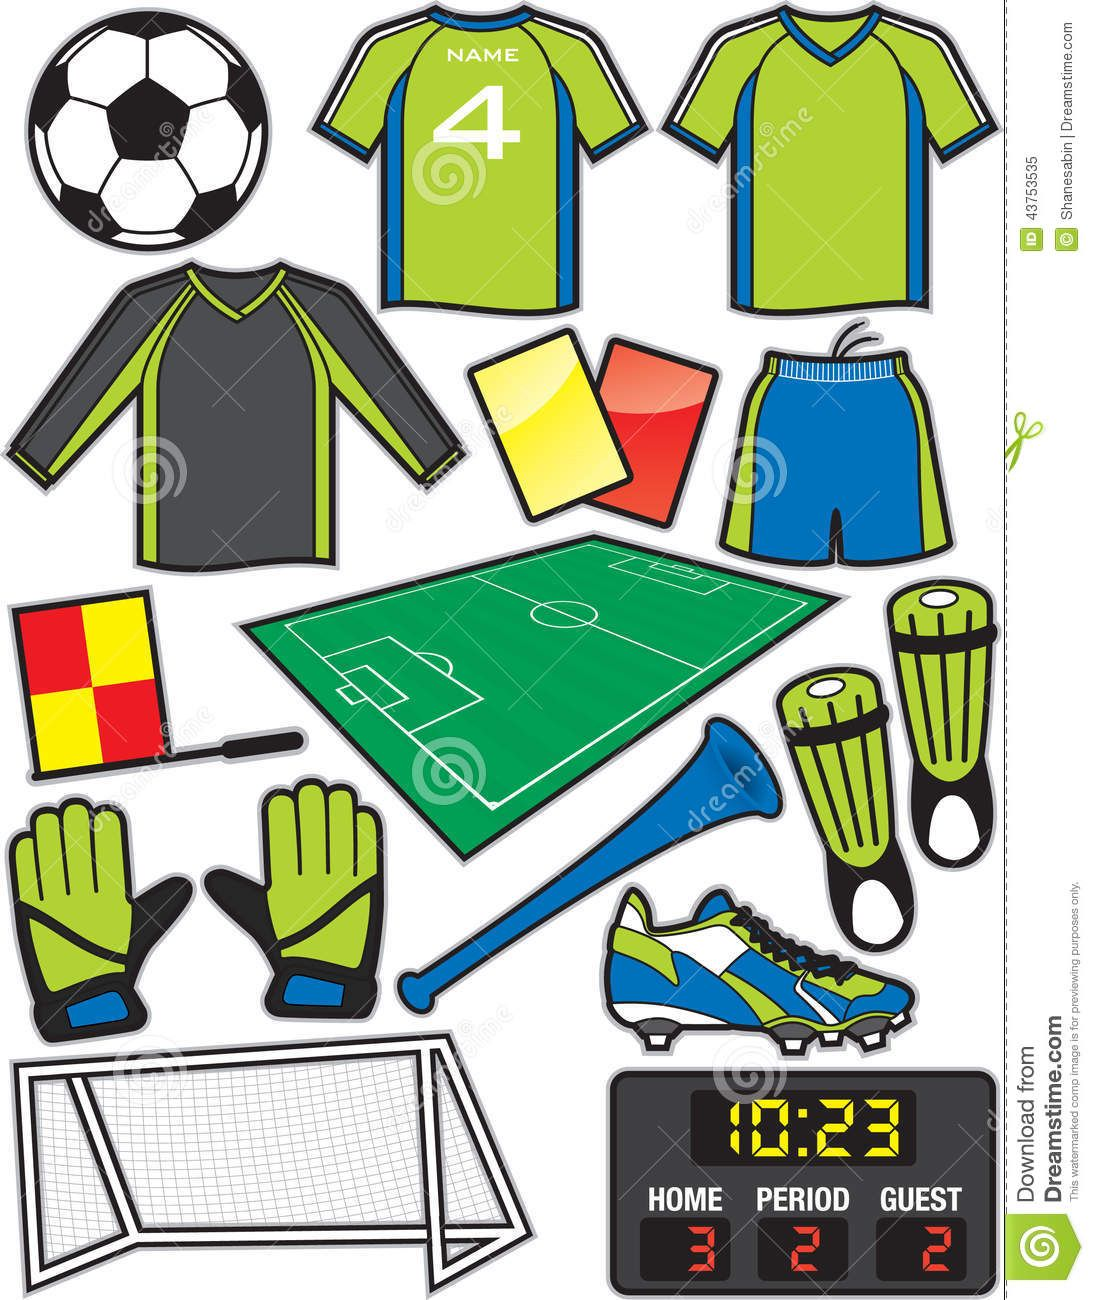 Illustration About Items Equipment Used In The Sport Of American Soccer Or Football Illustration Of Guard Field Competitive Football Themes Soccer Football